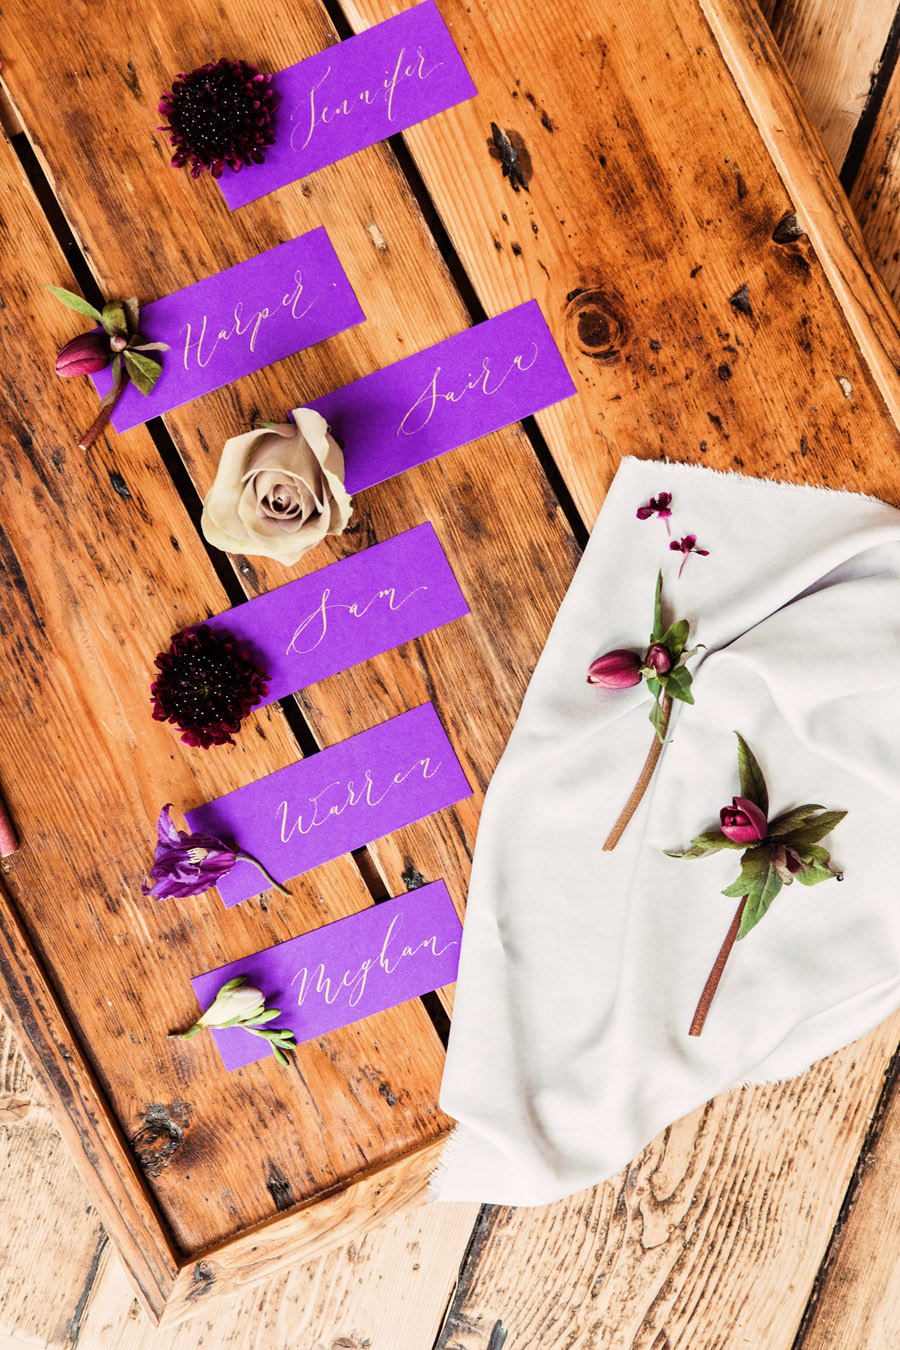 Calligraphy wedding service for place names and more - written by By Moon and Tide Calligraphy - image credit Camilla Lucinda (5)